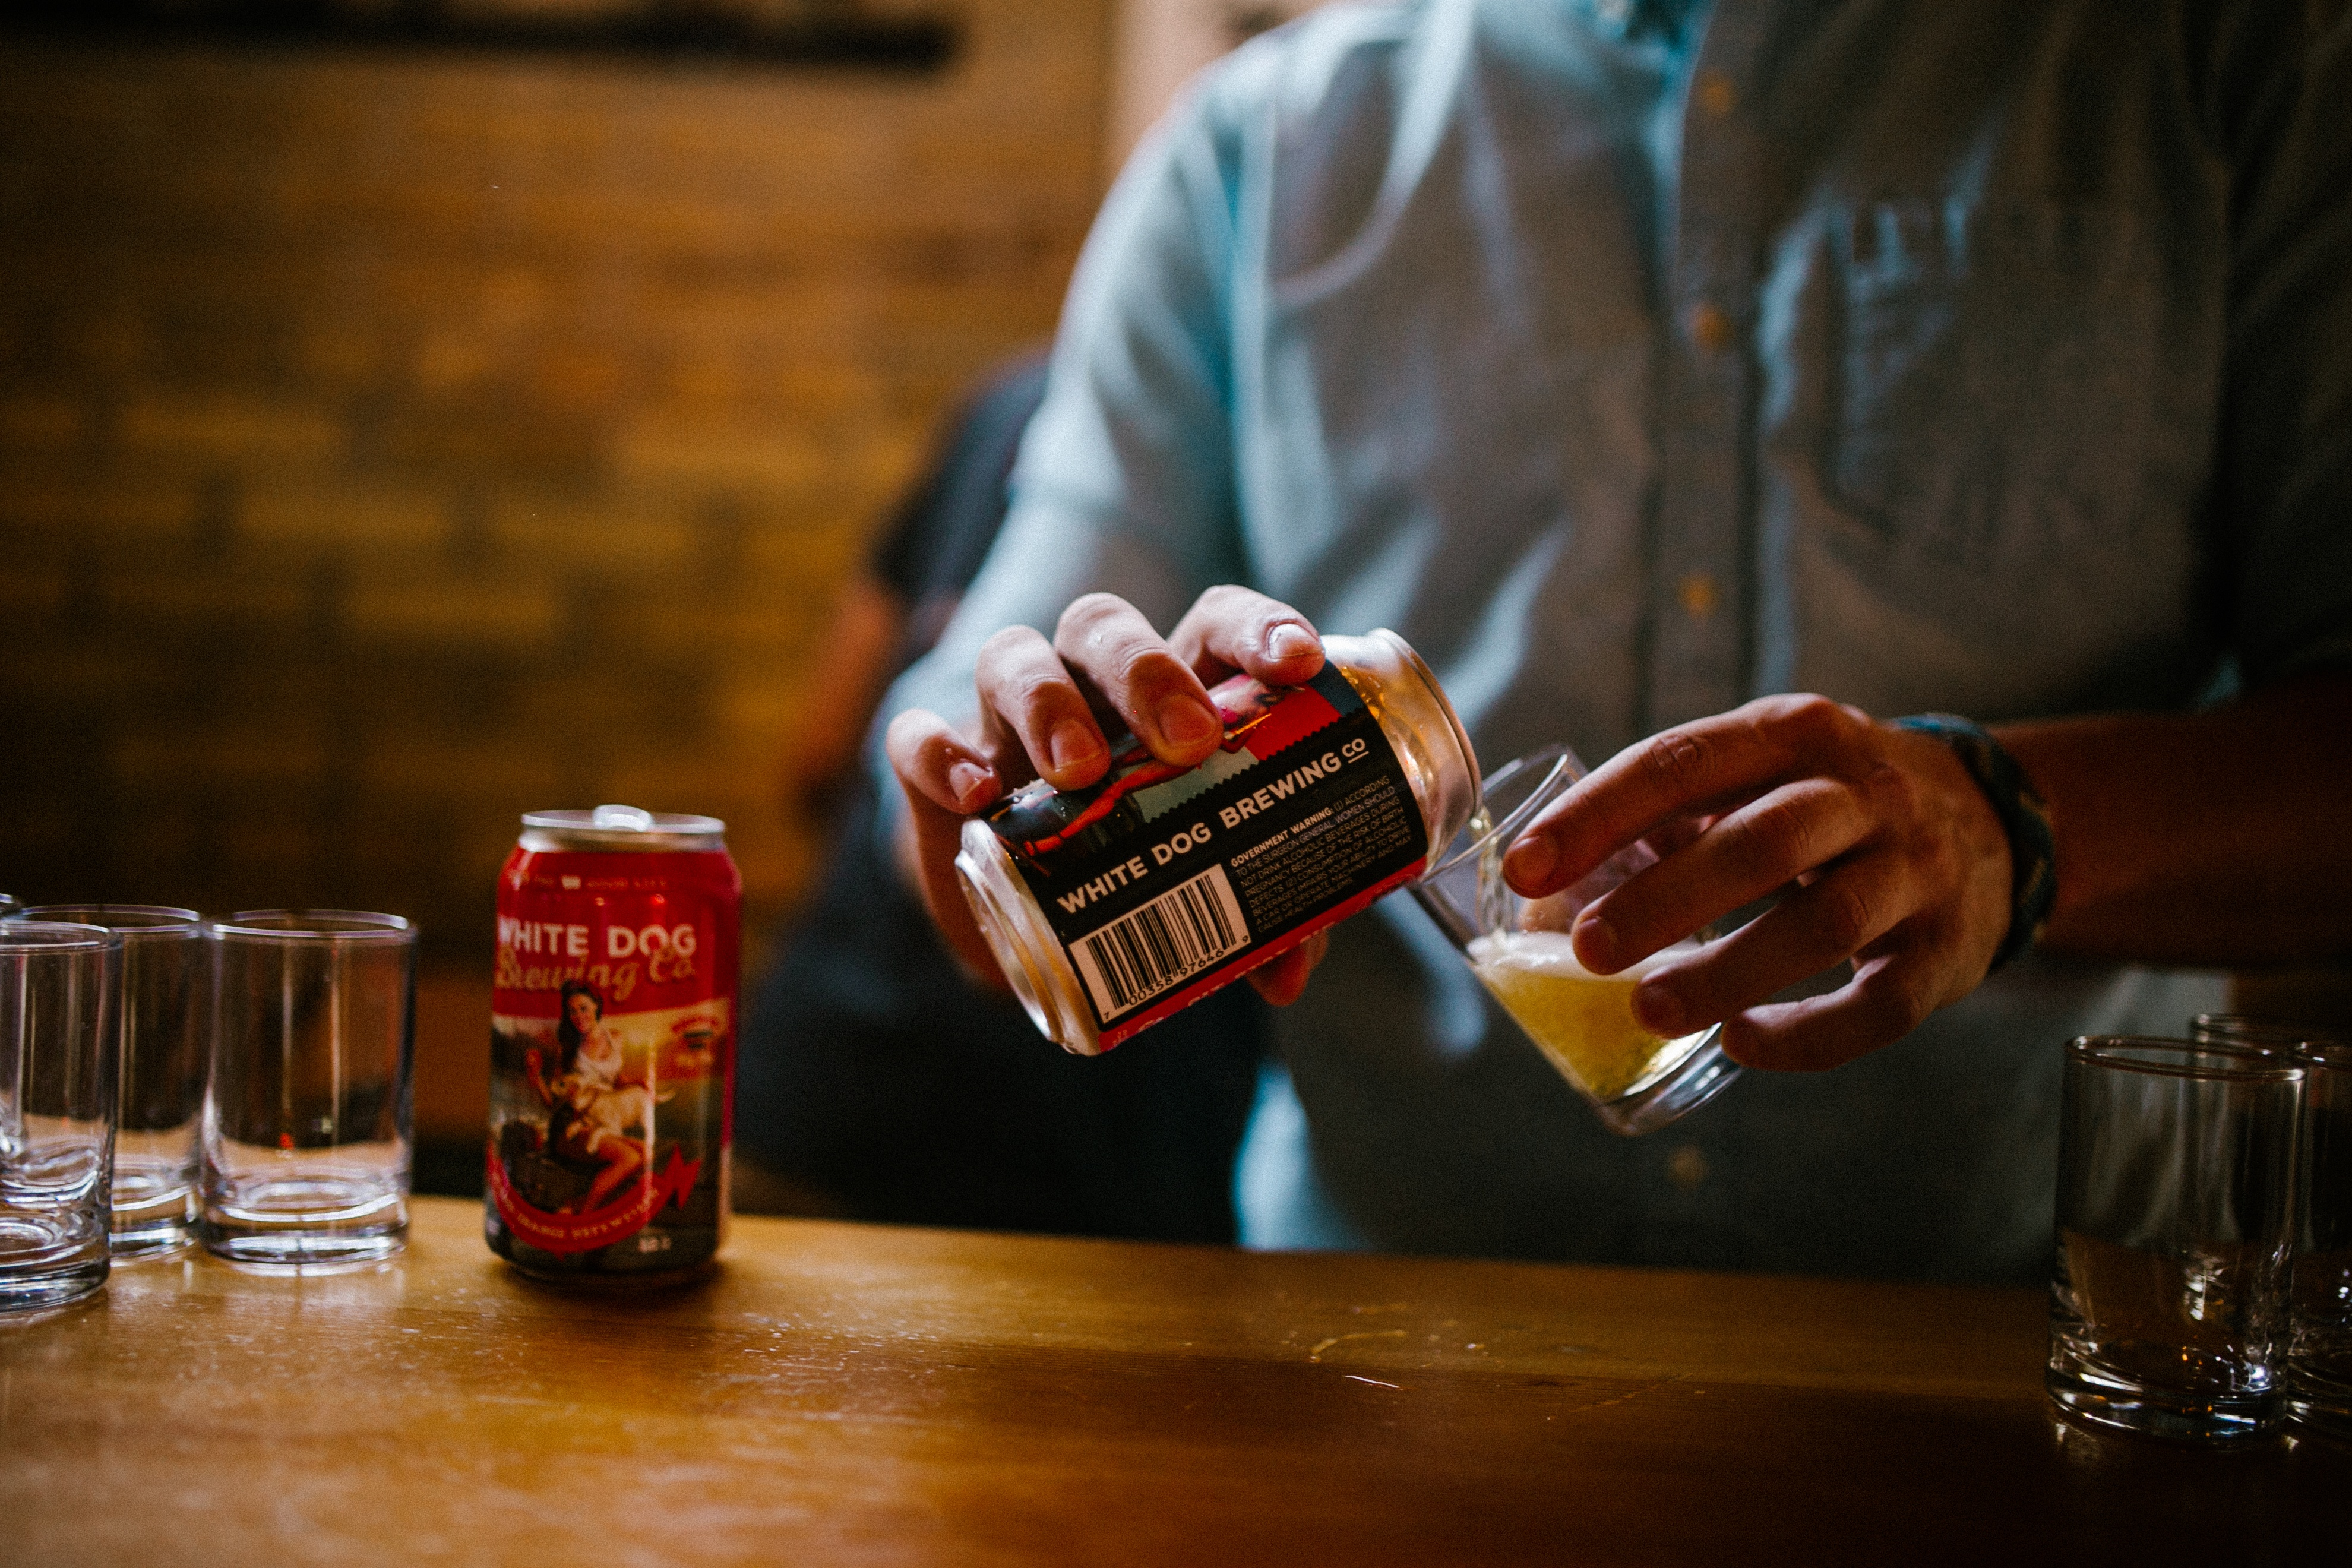 Ranking the Best IPAs at White Dog Brewing Co in Bozeman Montana